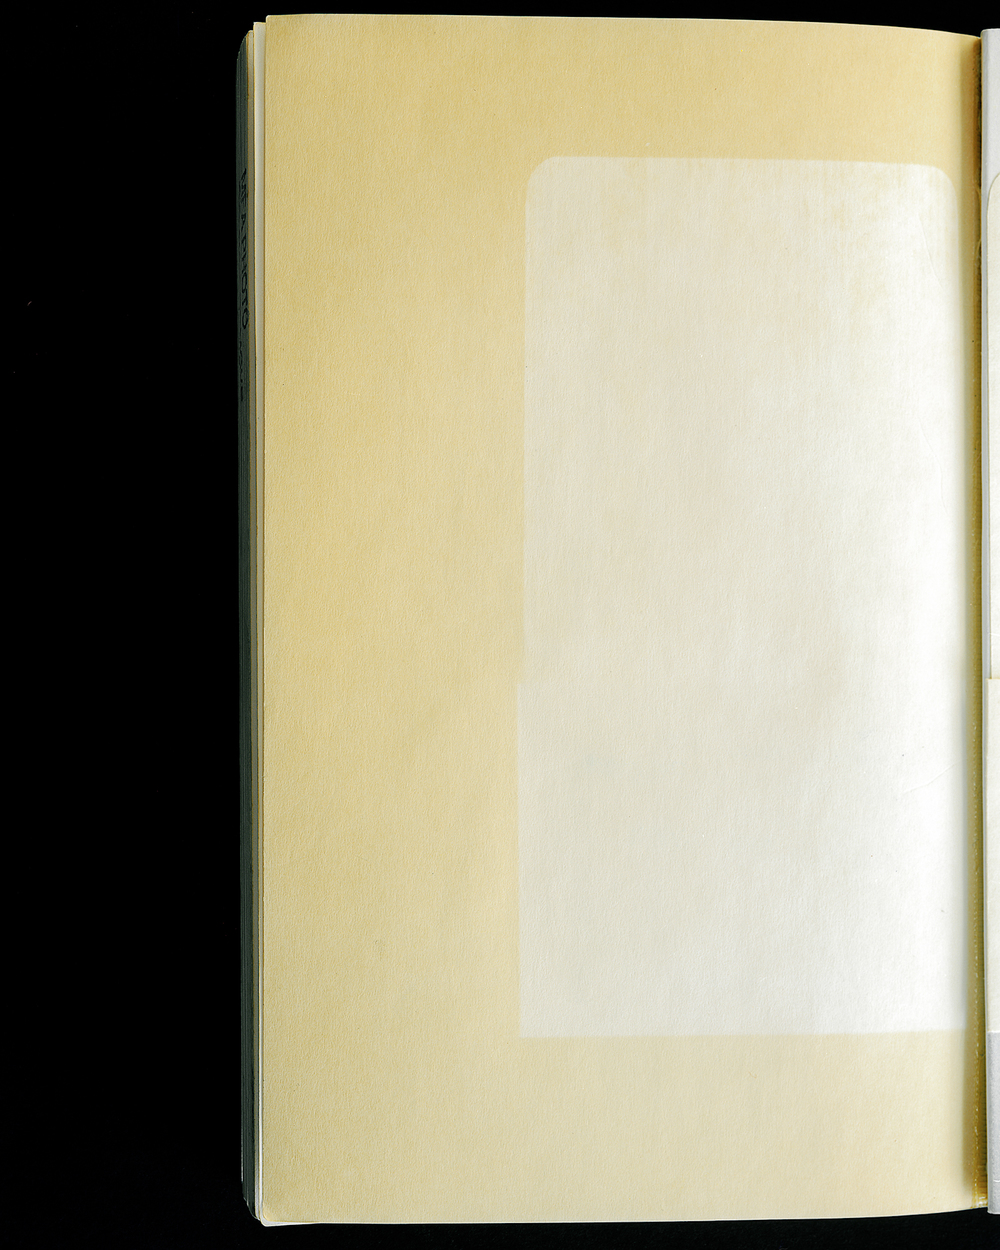 Library-1 , archival pigment print, 11 x 14 inches, 2012